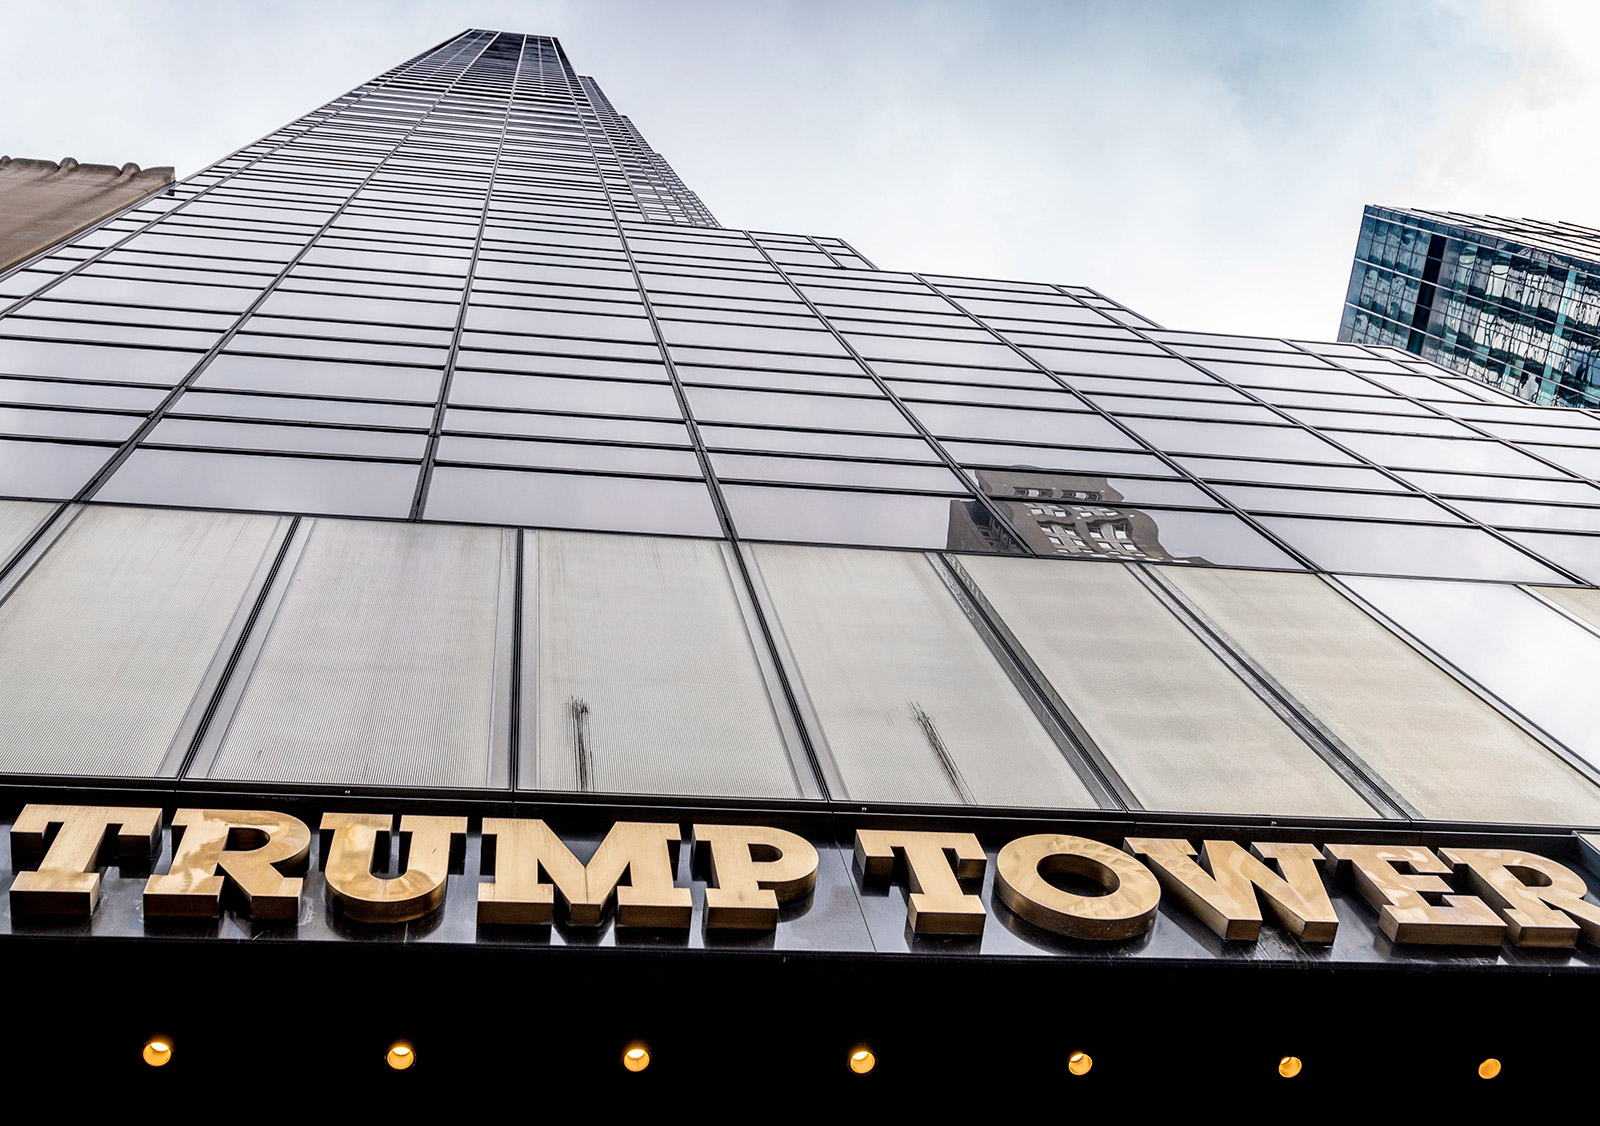 Trump Tower in Manhattan is the headquarters of the Trump Organization.